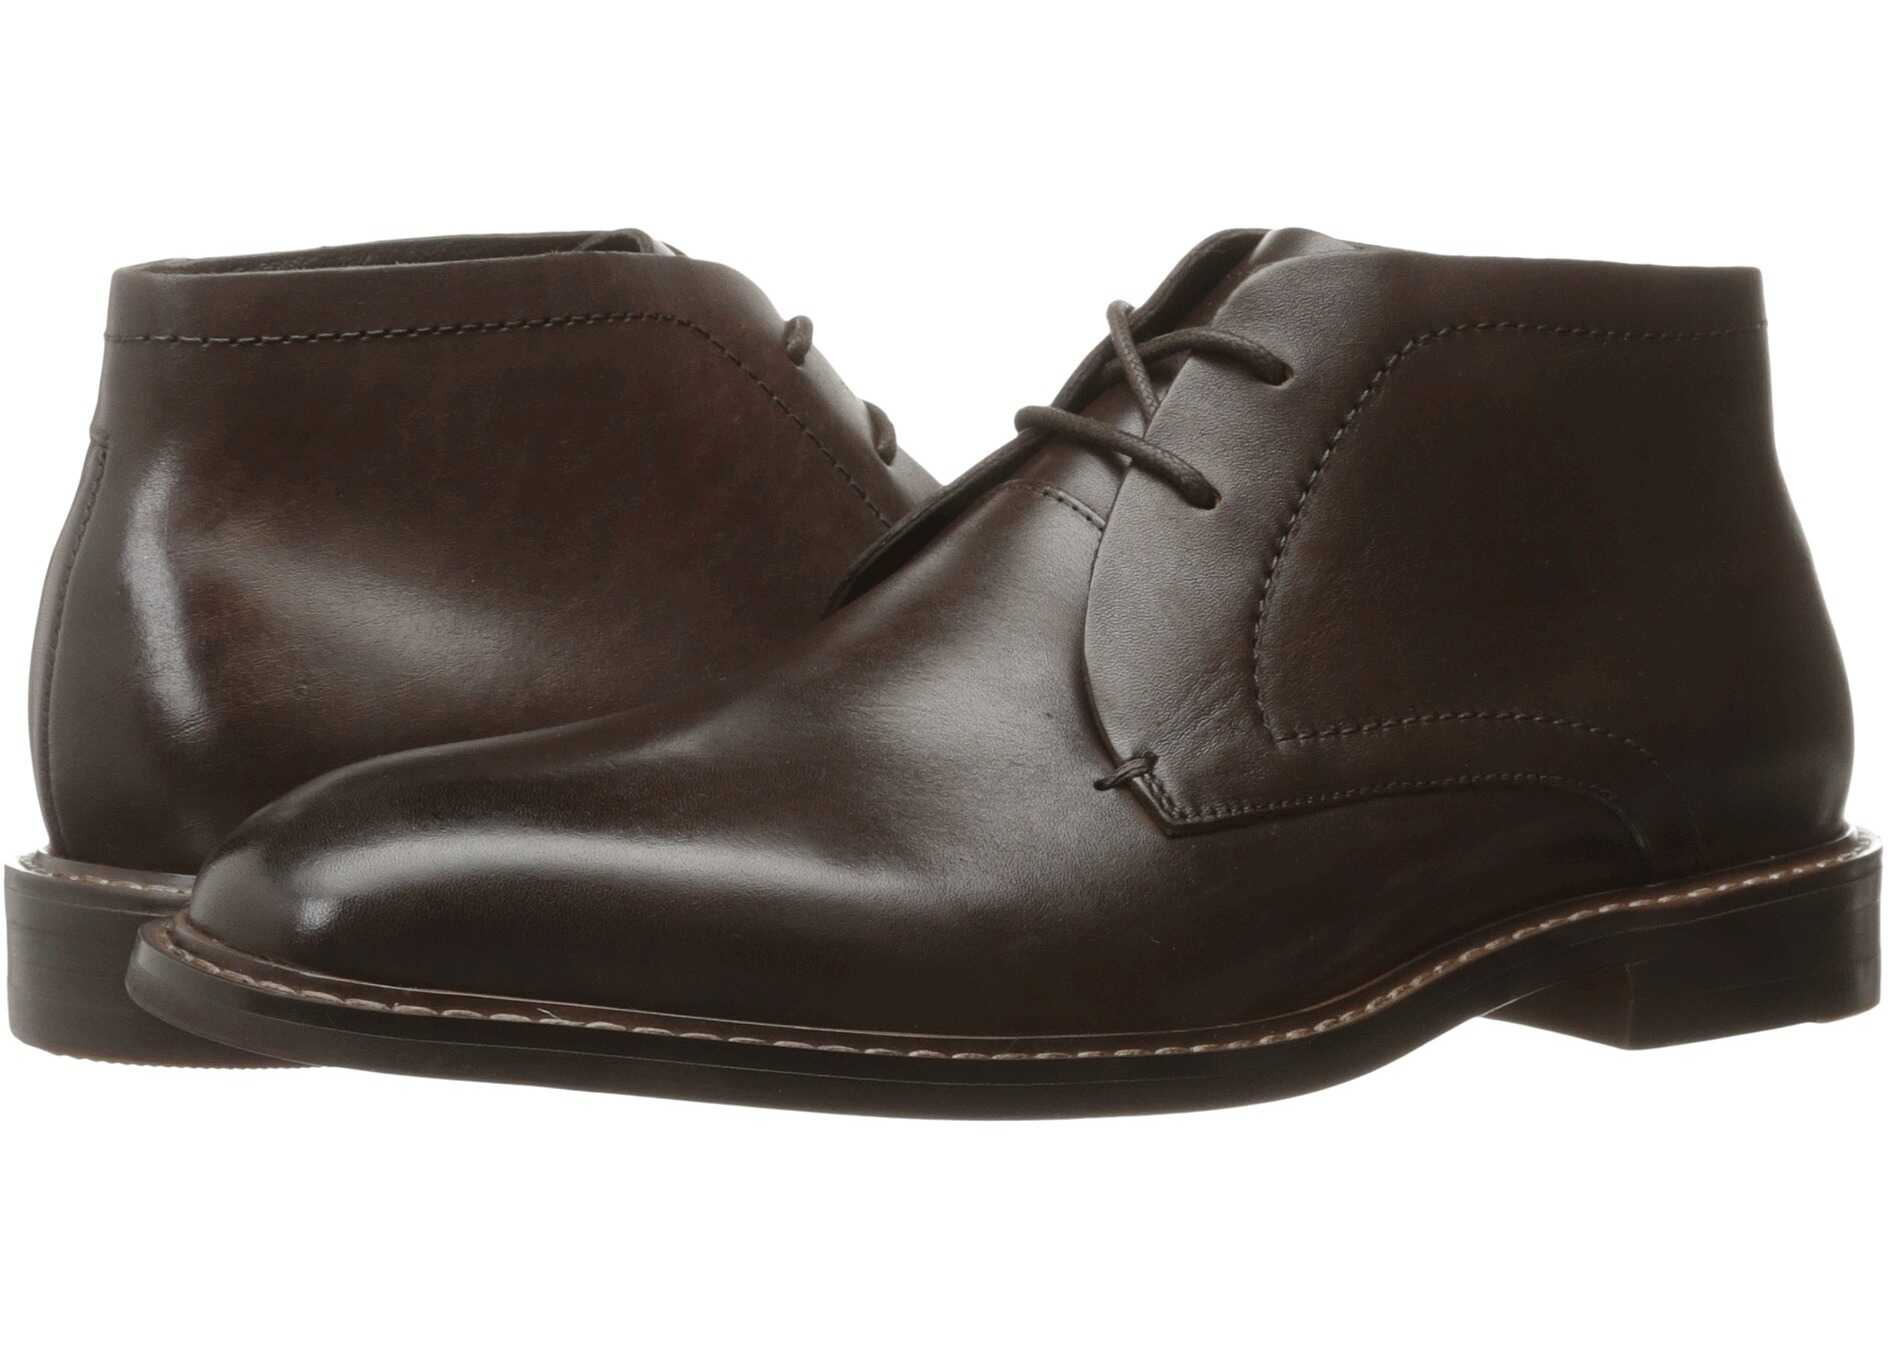 Kenneth Cole New York Sum-Day Brown